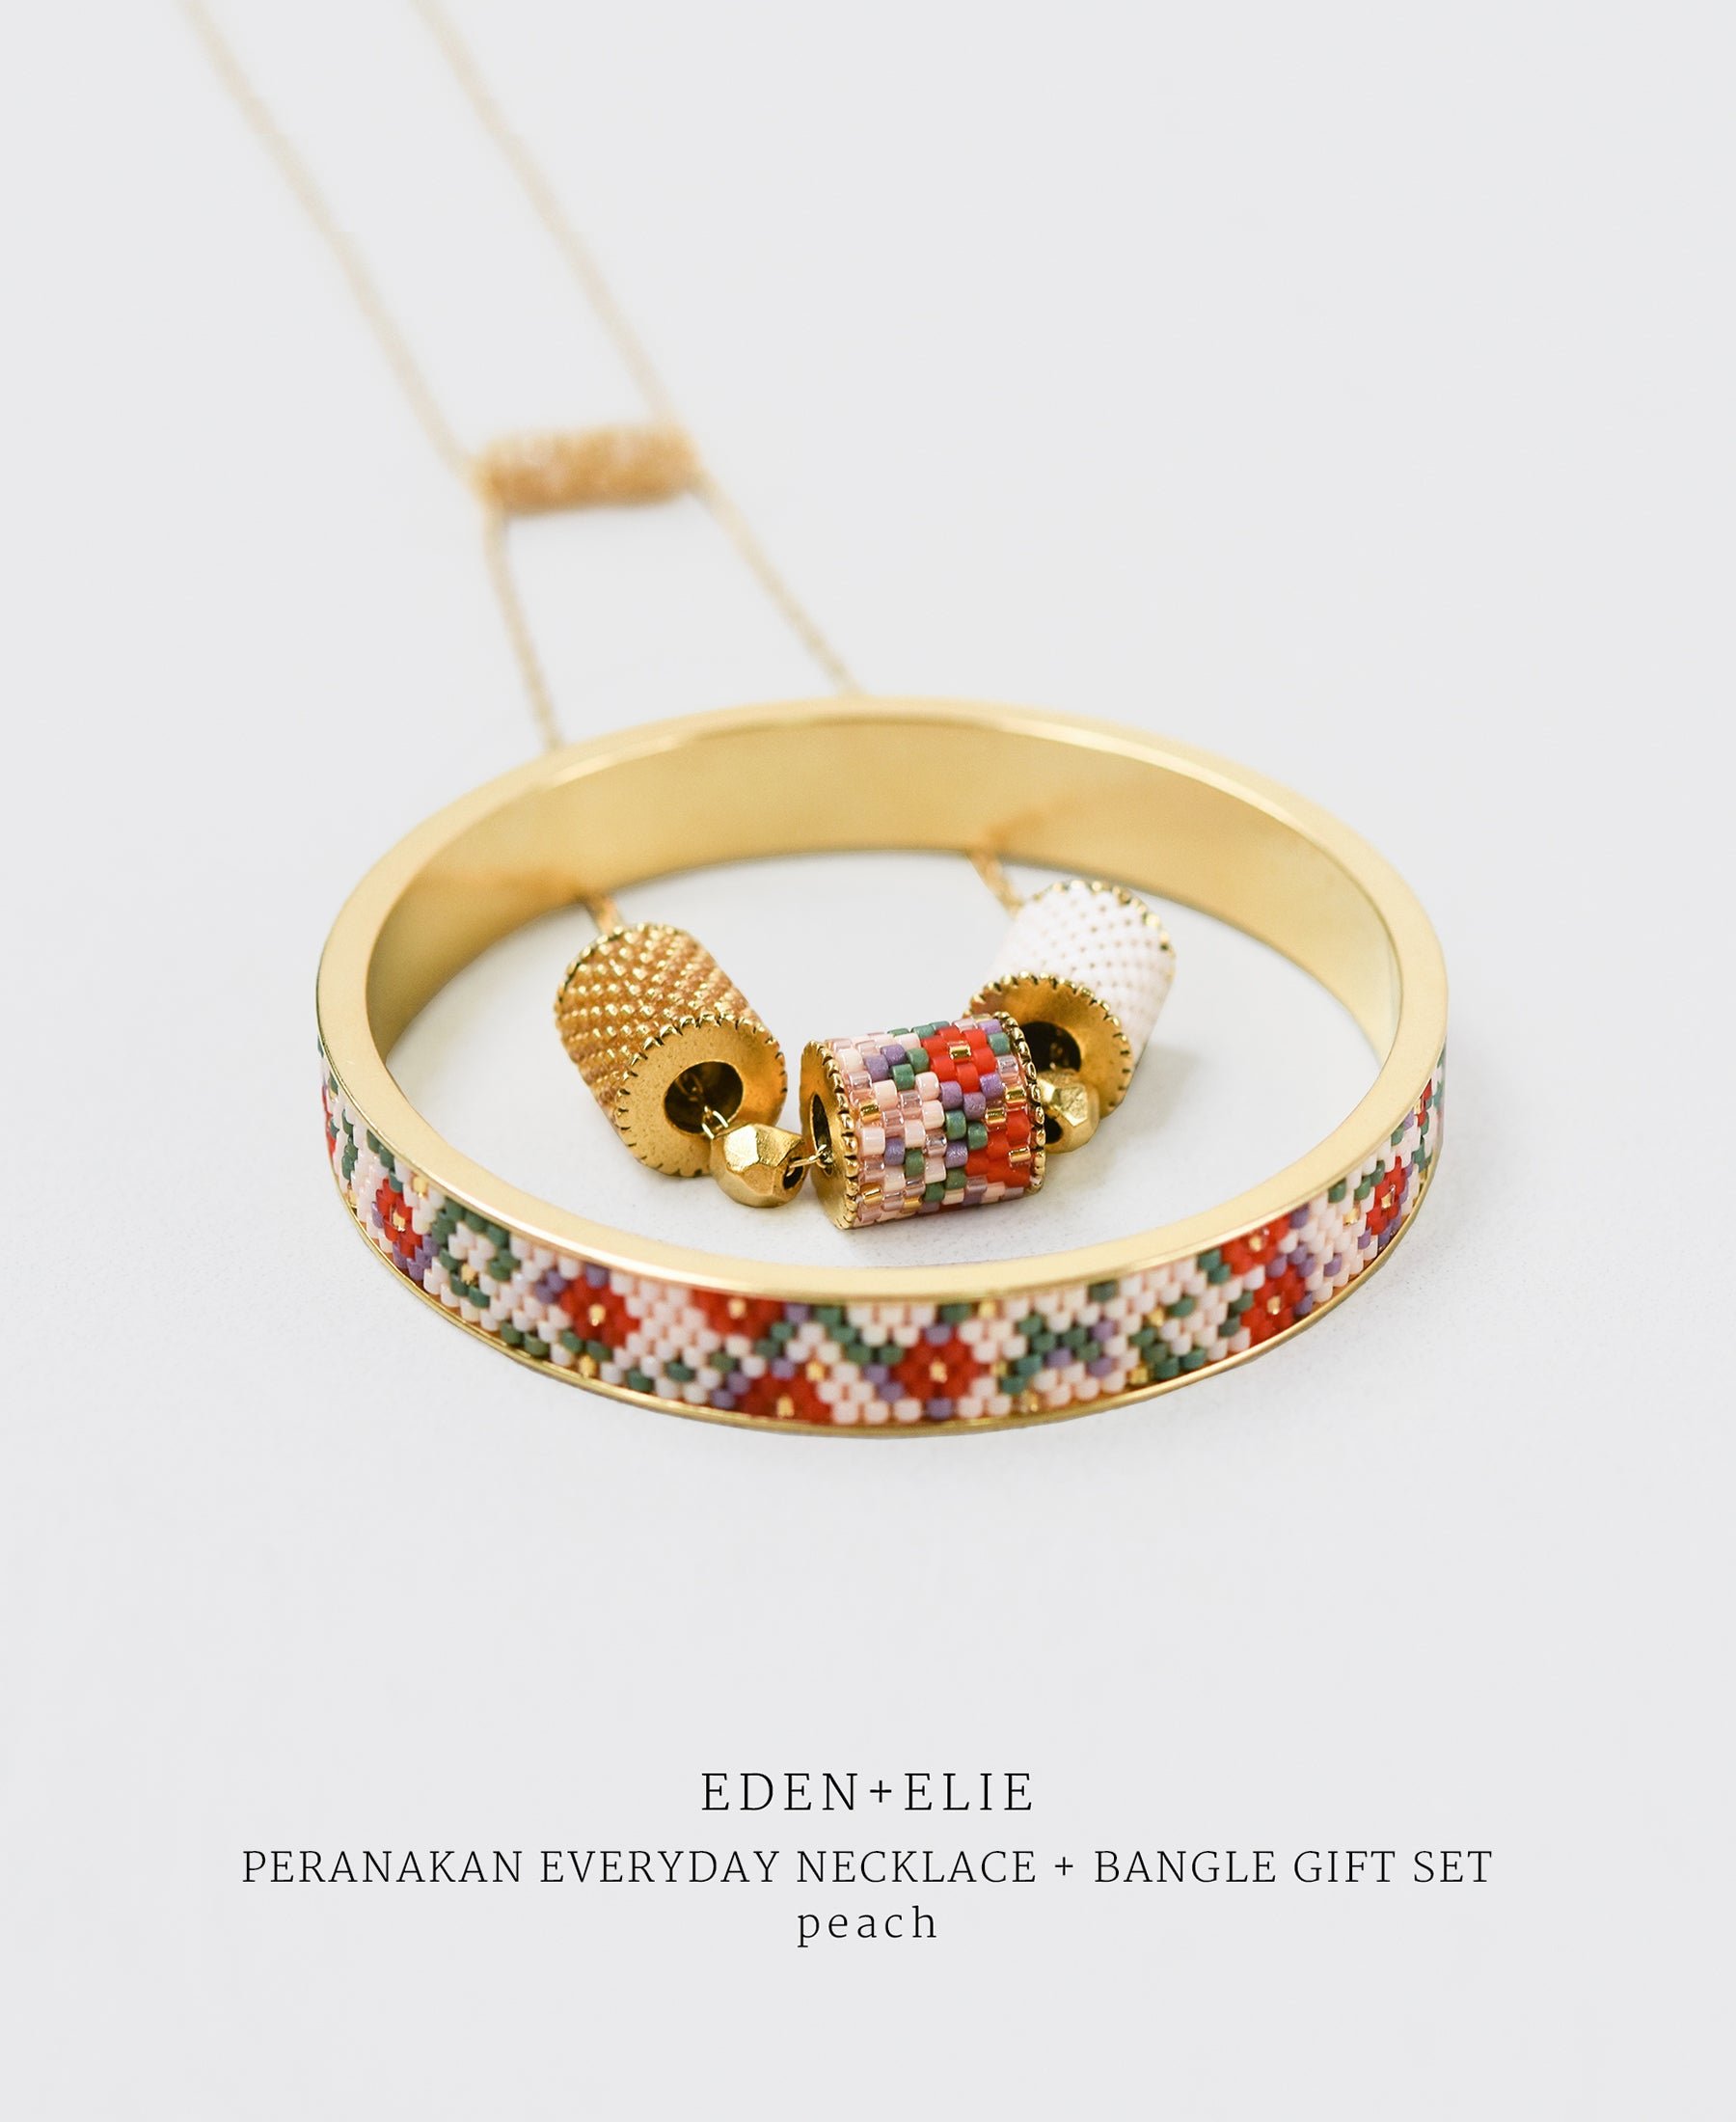 EDEN + ELIE Modern Peranakan adjustable length necklace + bangle gift set - peach